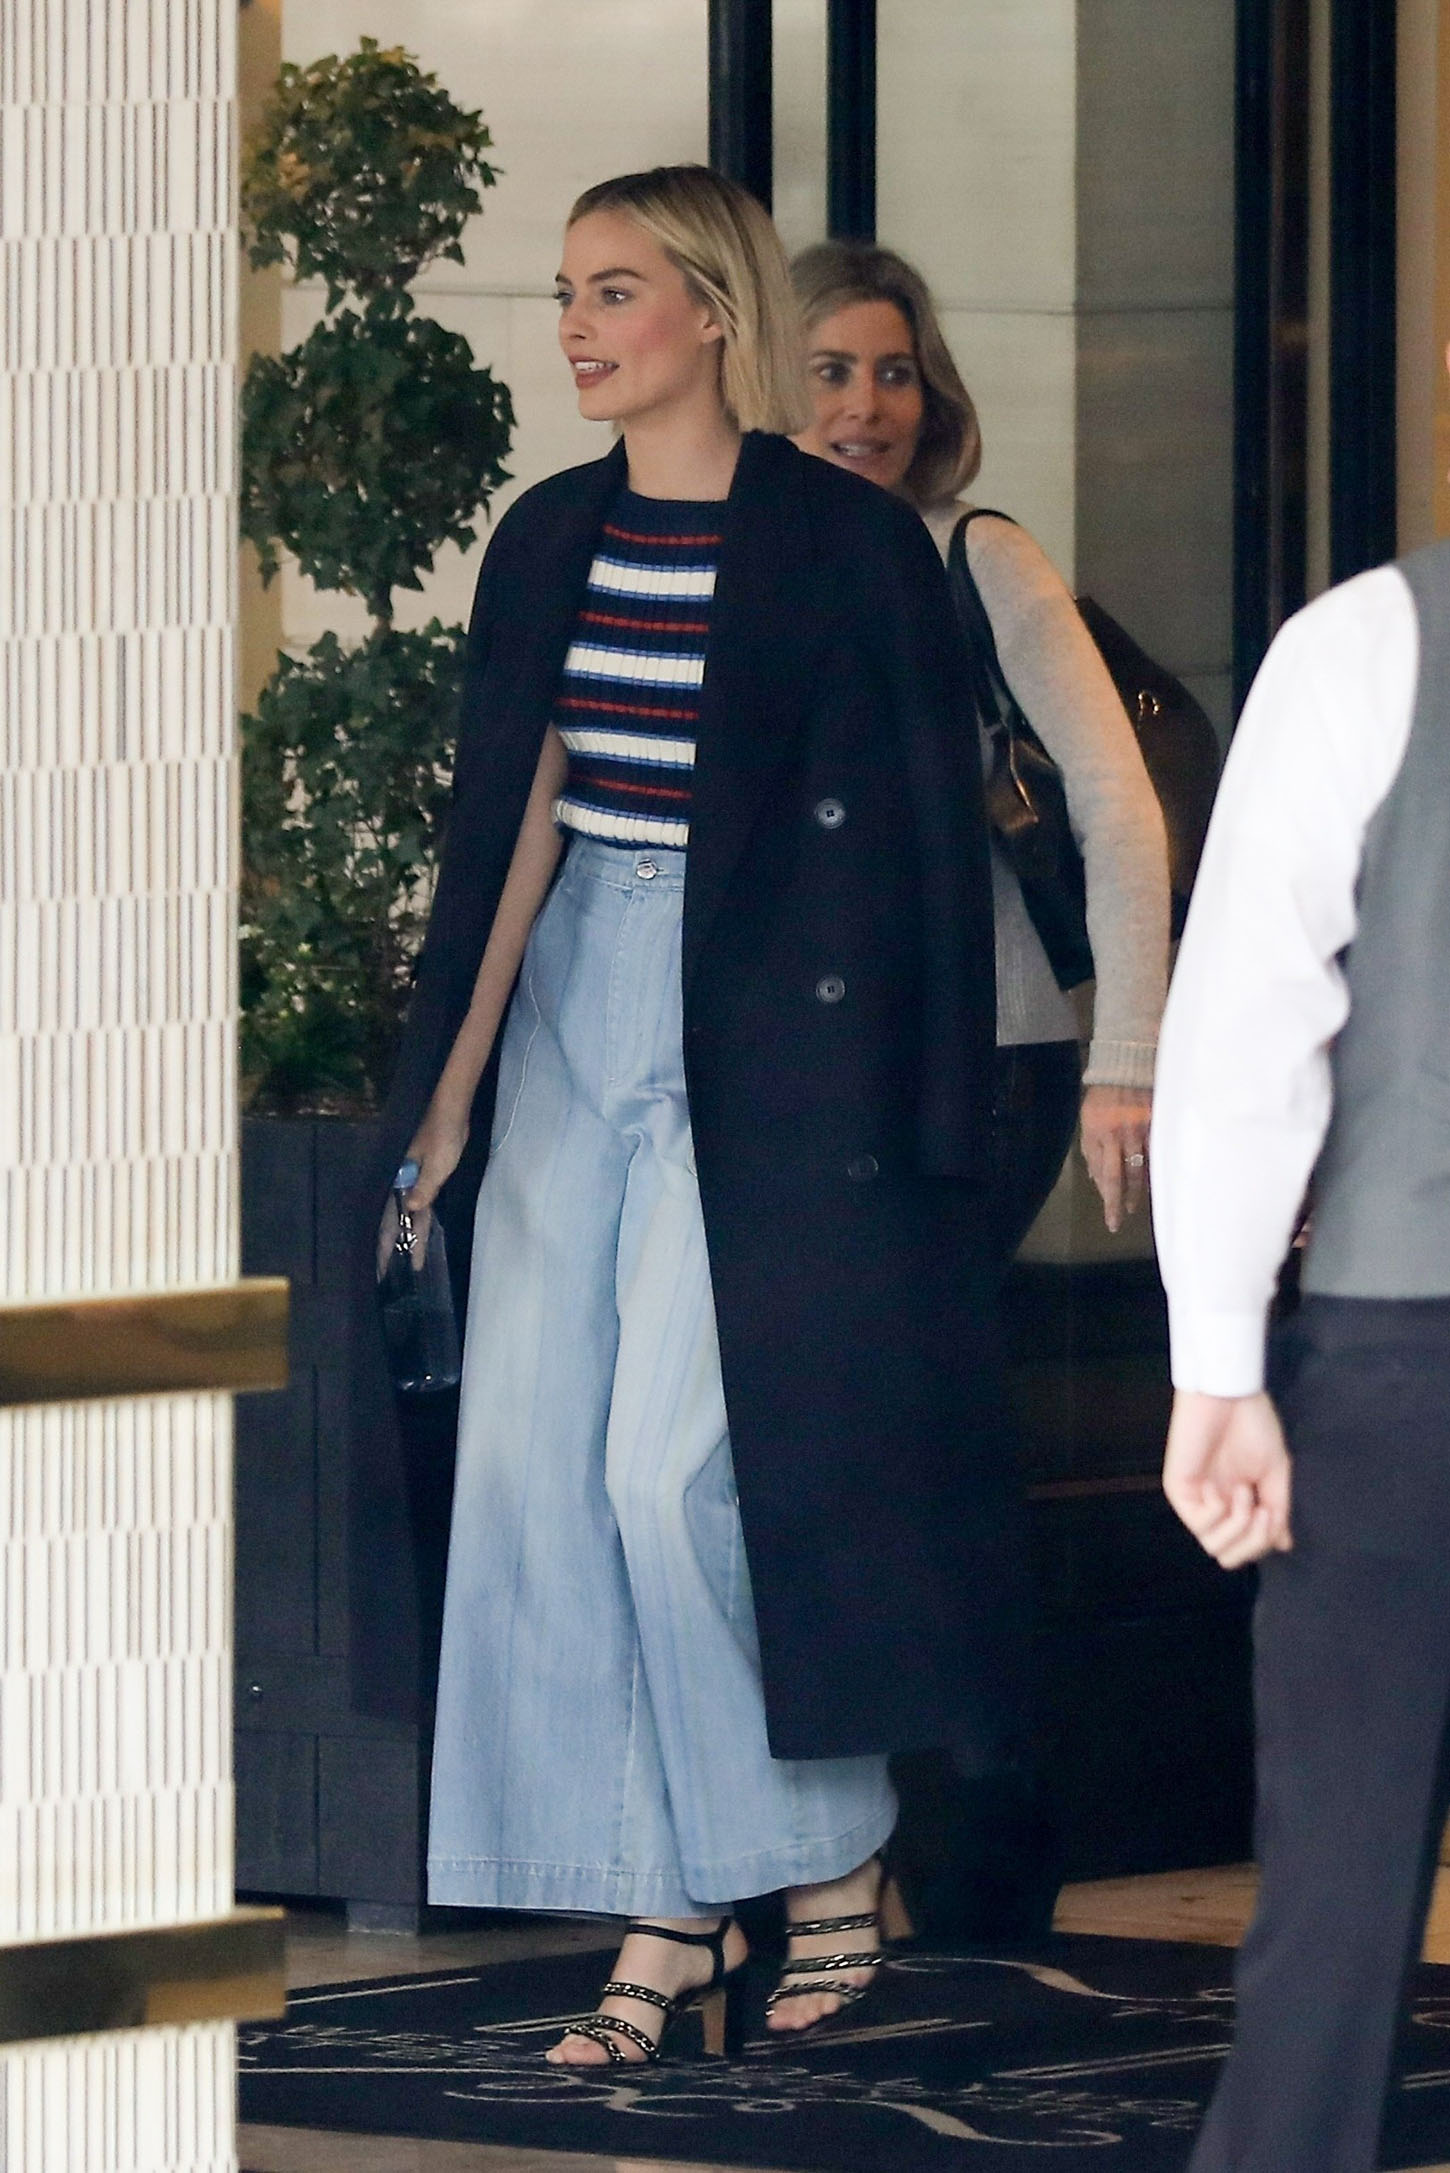 West Hollywood, CA  - *EXCLUSIVE* Margot Robbie goes to brunch with friends in West Hollywood. The Australian actress wears a long blue coat and baggy jeans with heels for the outing with friends.  Pictured: Margot Robbie  BACKGRID USA 13 MARCH 2018, Image: 365955517, License: Rights-managed, Restrictions: , Model Release: no, Credit line: Profimedia, AKM-GSI